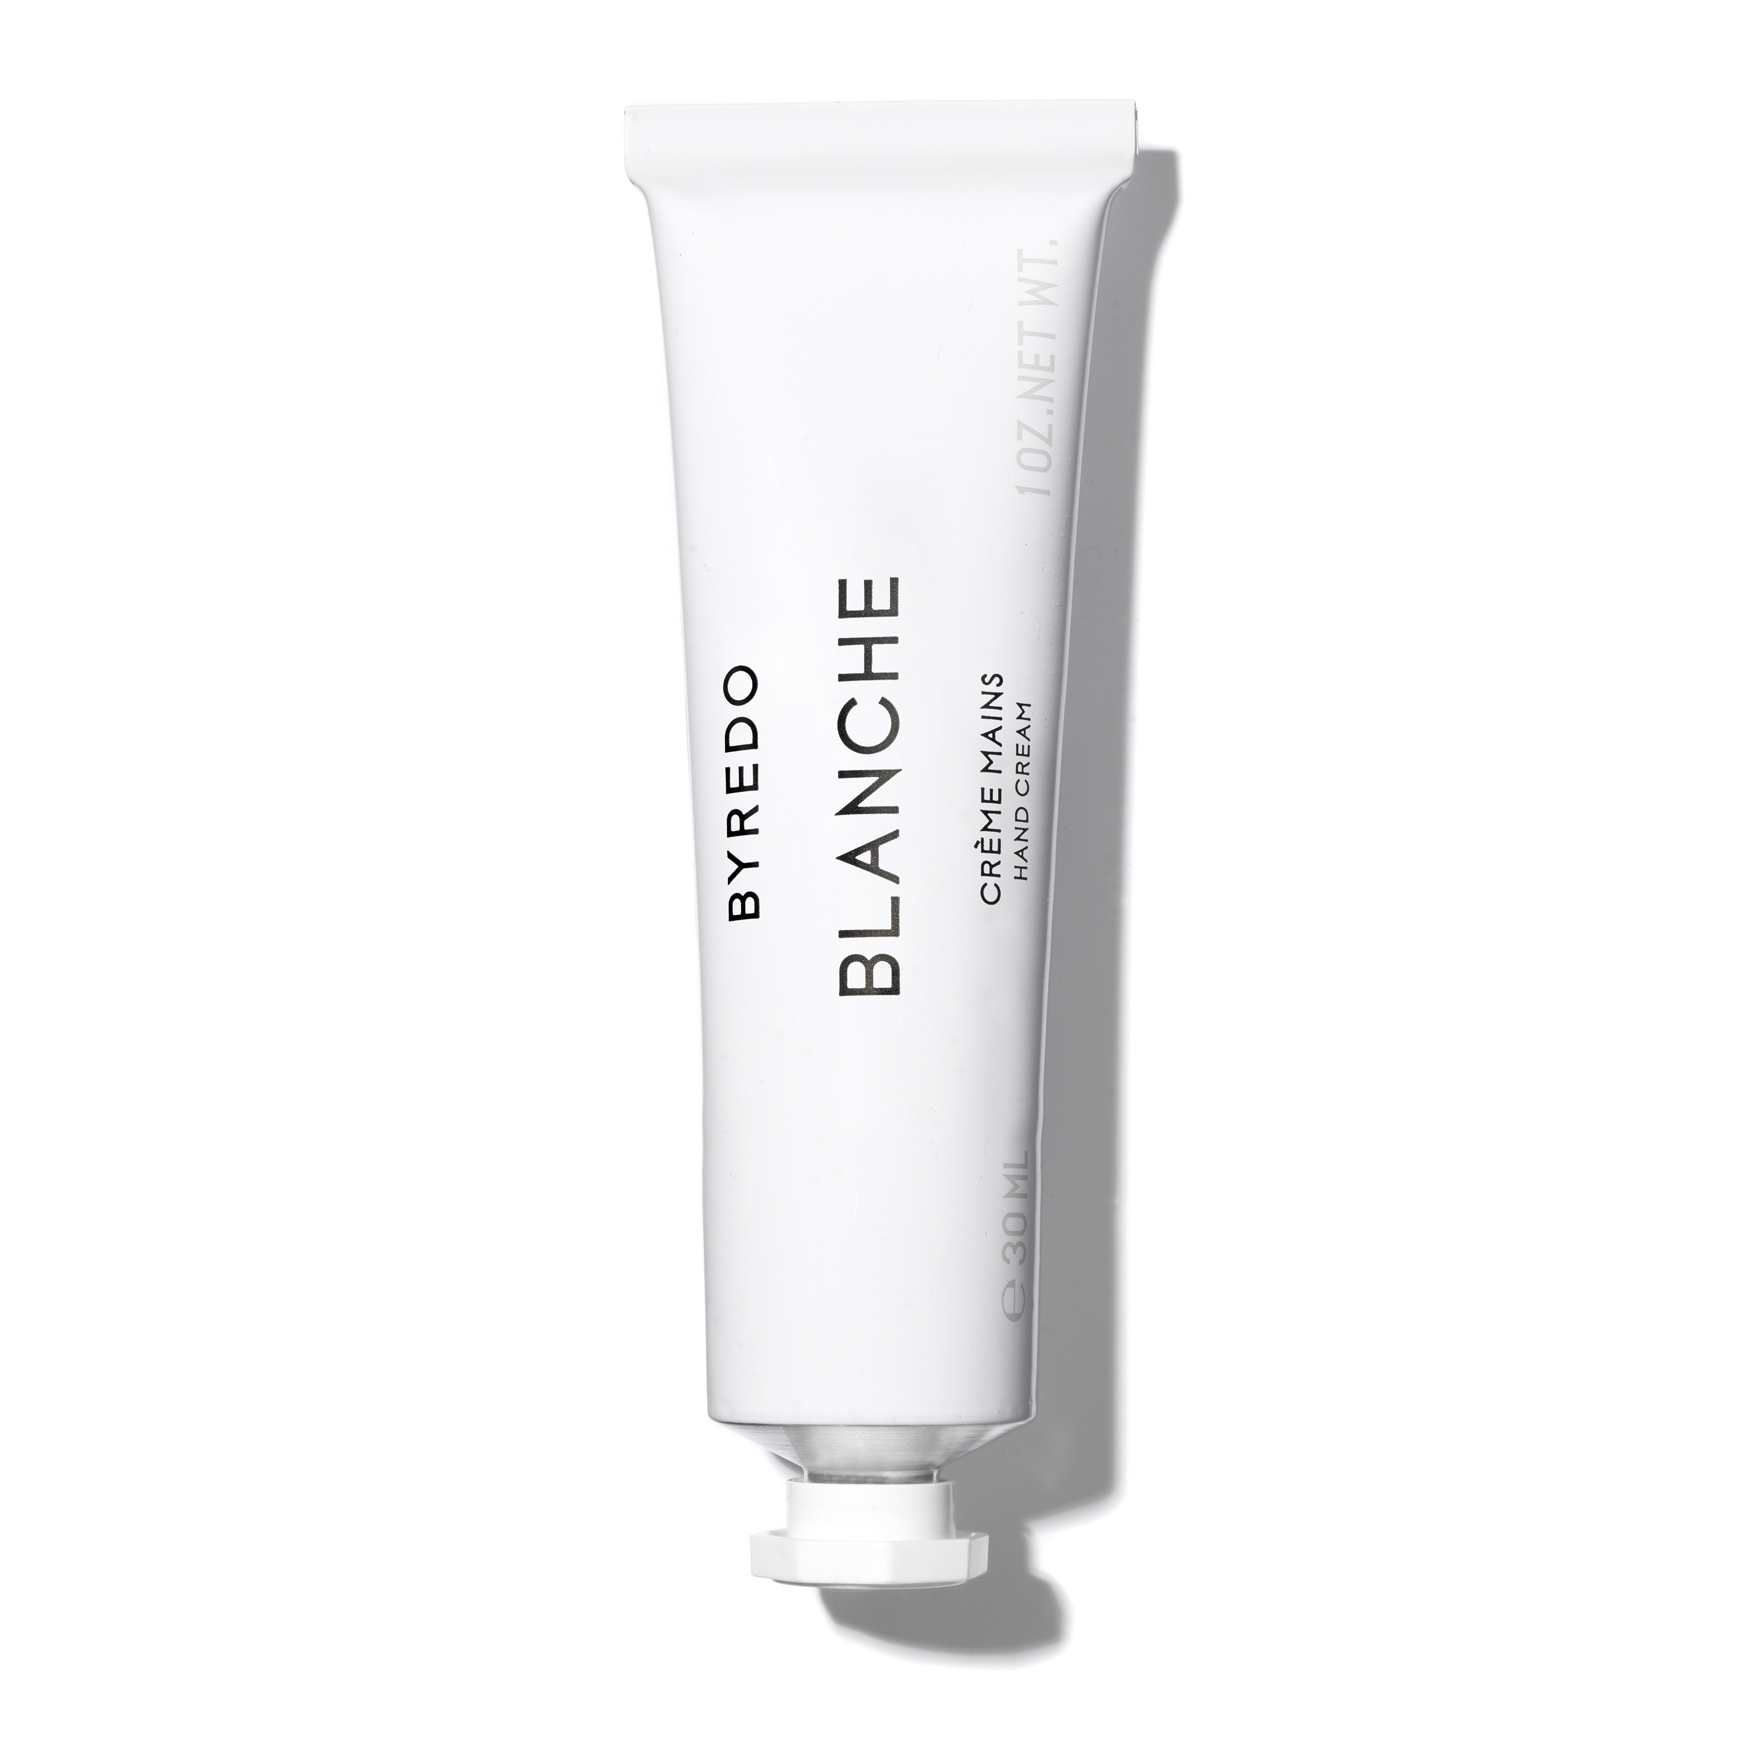 Blanche Hand Cream Travel Size, , large